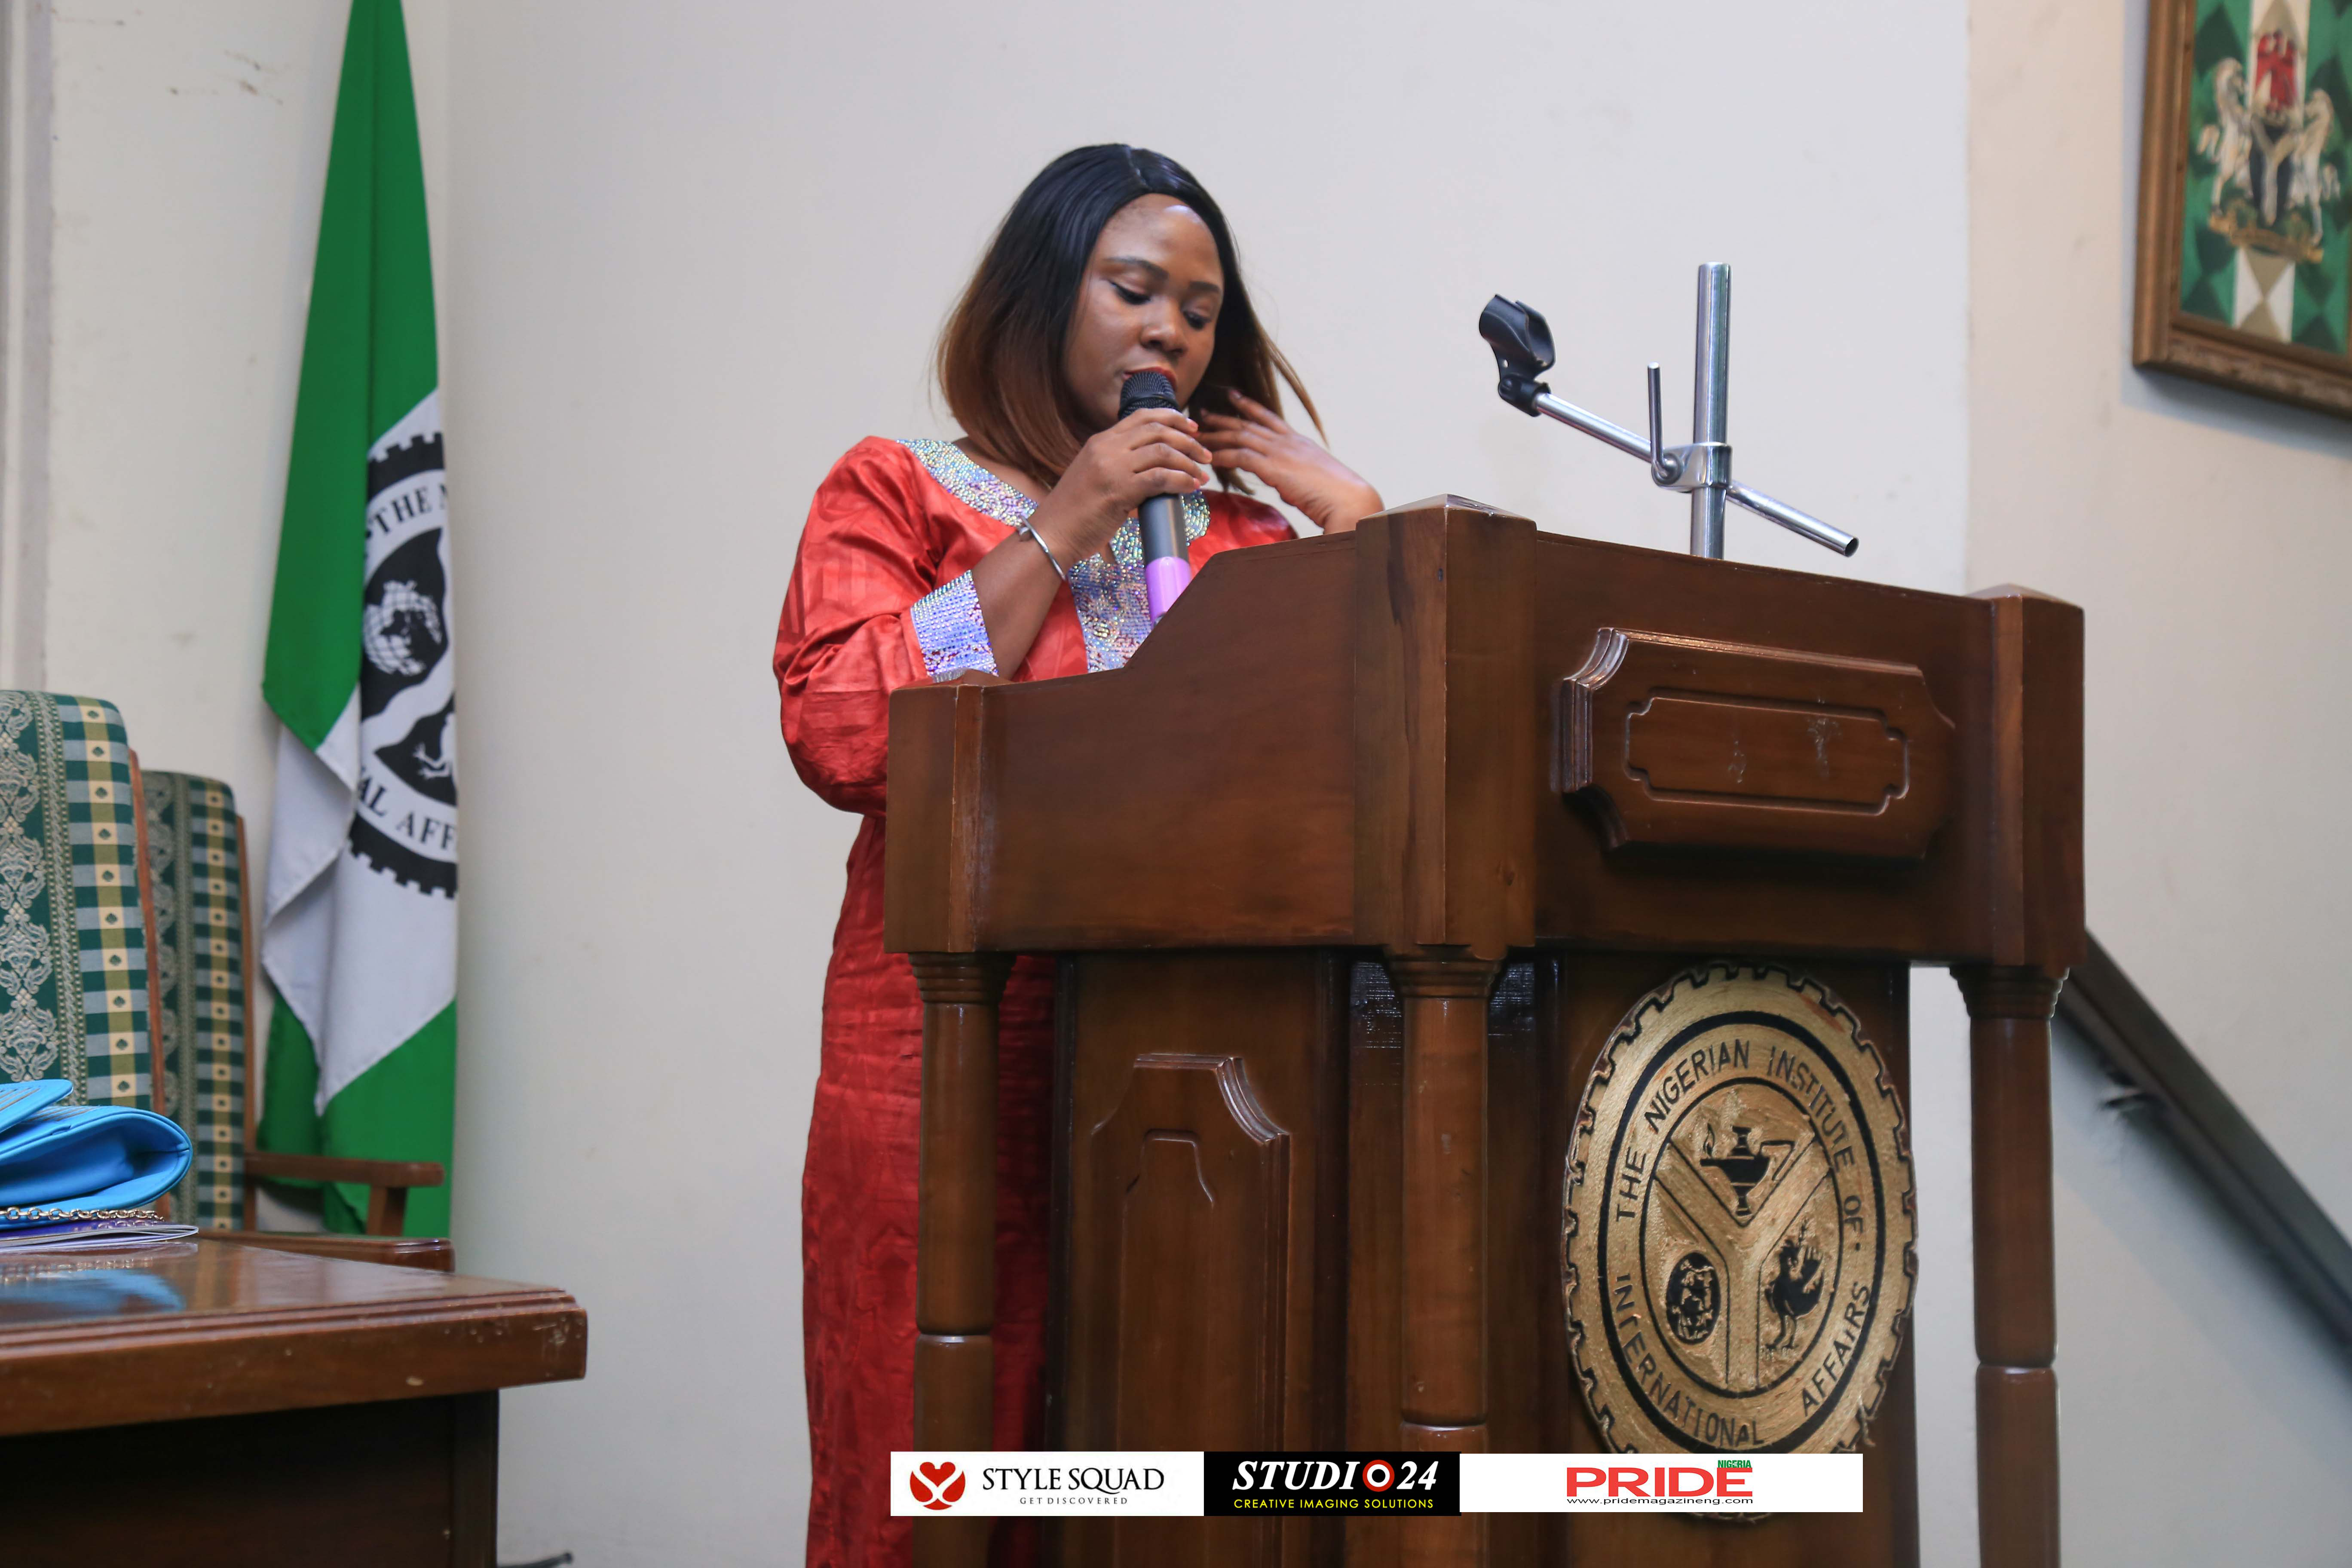 Pride Women conference; work relationships and marriage in the 21st century, Better life initiative program foundation, Hajiya Aisha Babangida, Pride Magazine Nigeria, women matters, rural women in Africa